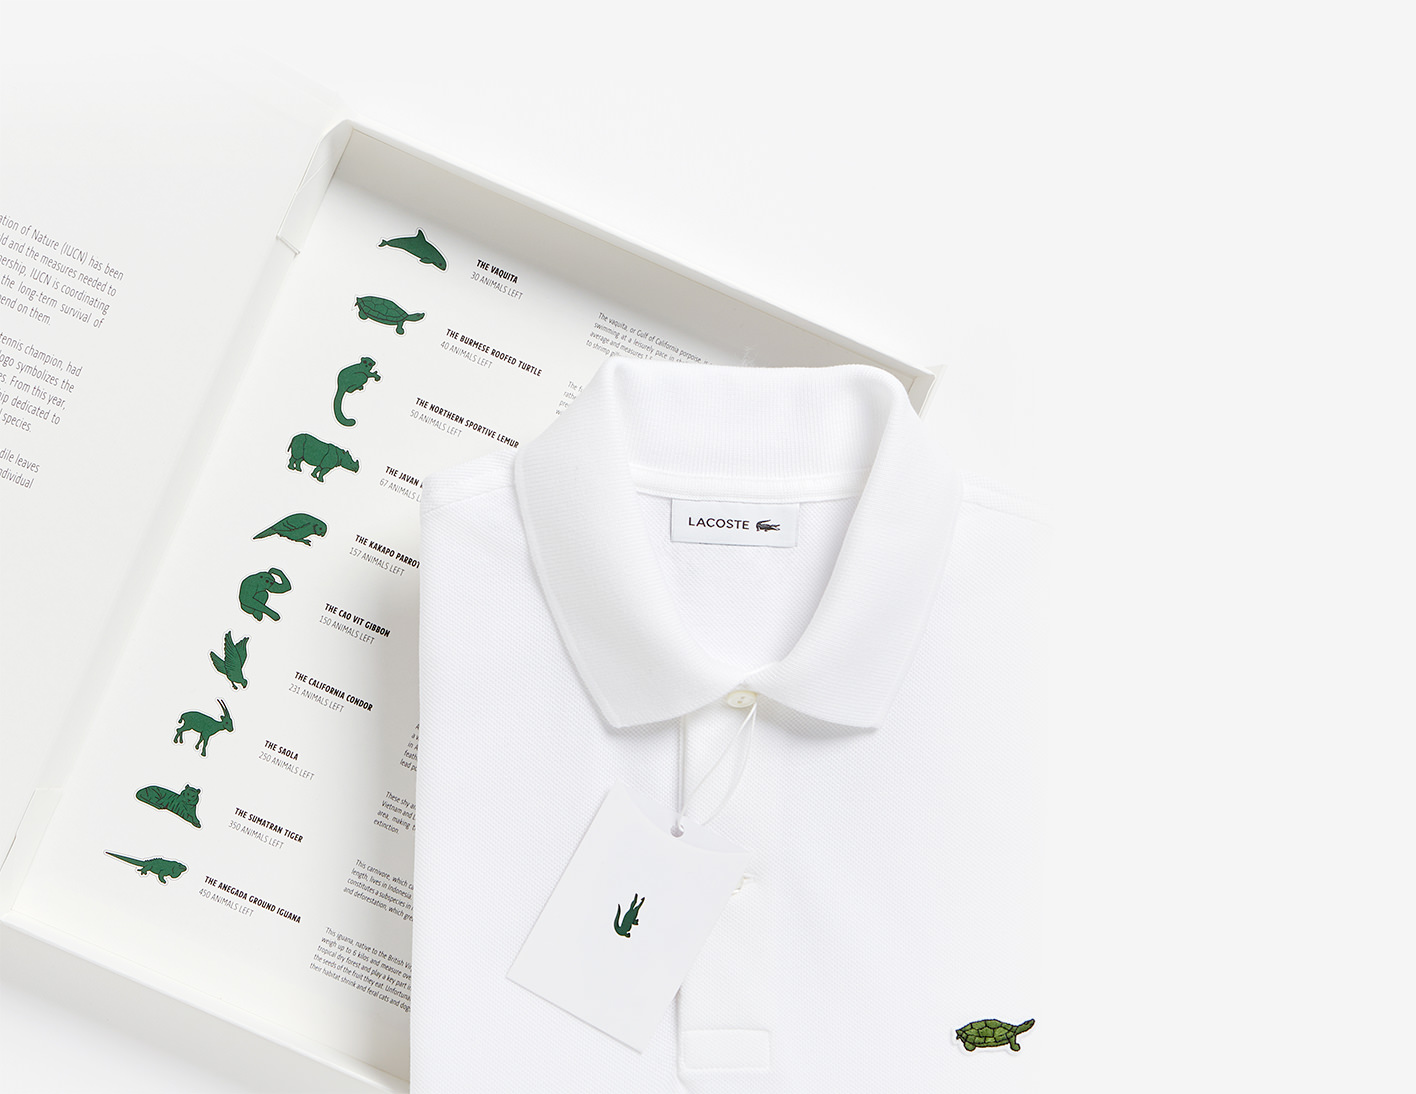 ebe501ea307c Lacoste s iconic Crocodile makes room for 10 Endangered Species on brand s  polo shirts